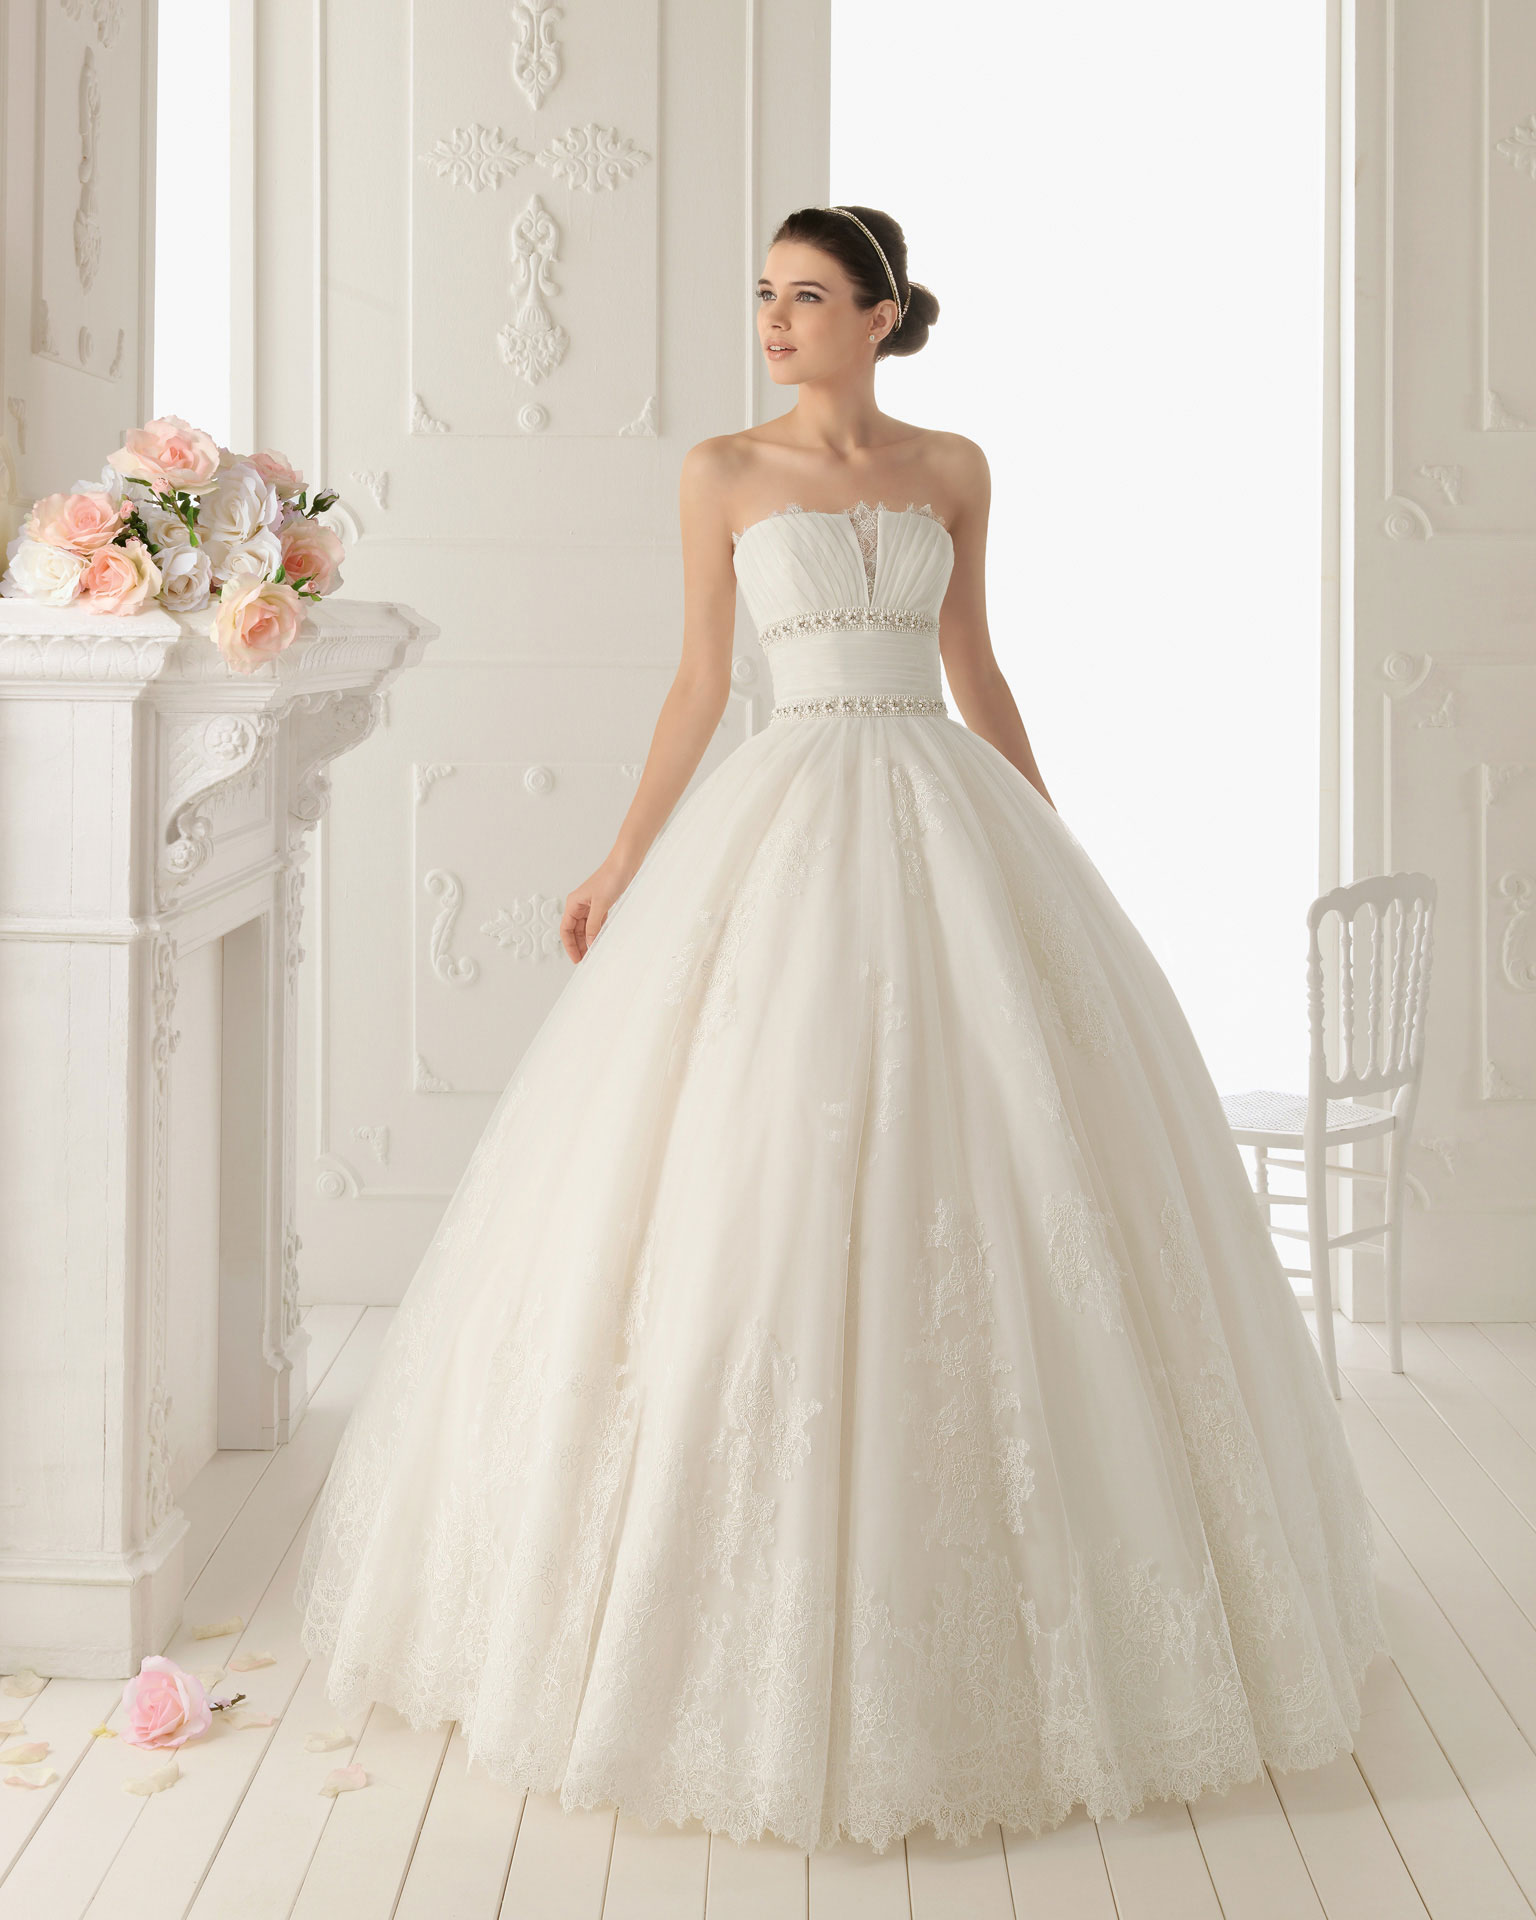 2013 wedding dress aire barcelona bridal gowns ray for Wedding dresses in barcelona spain